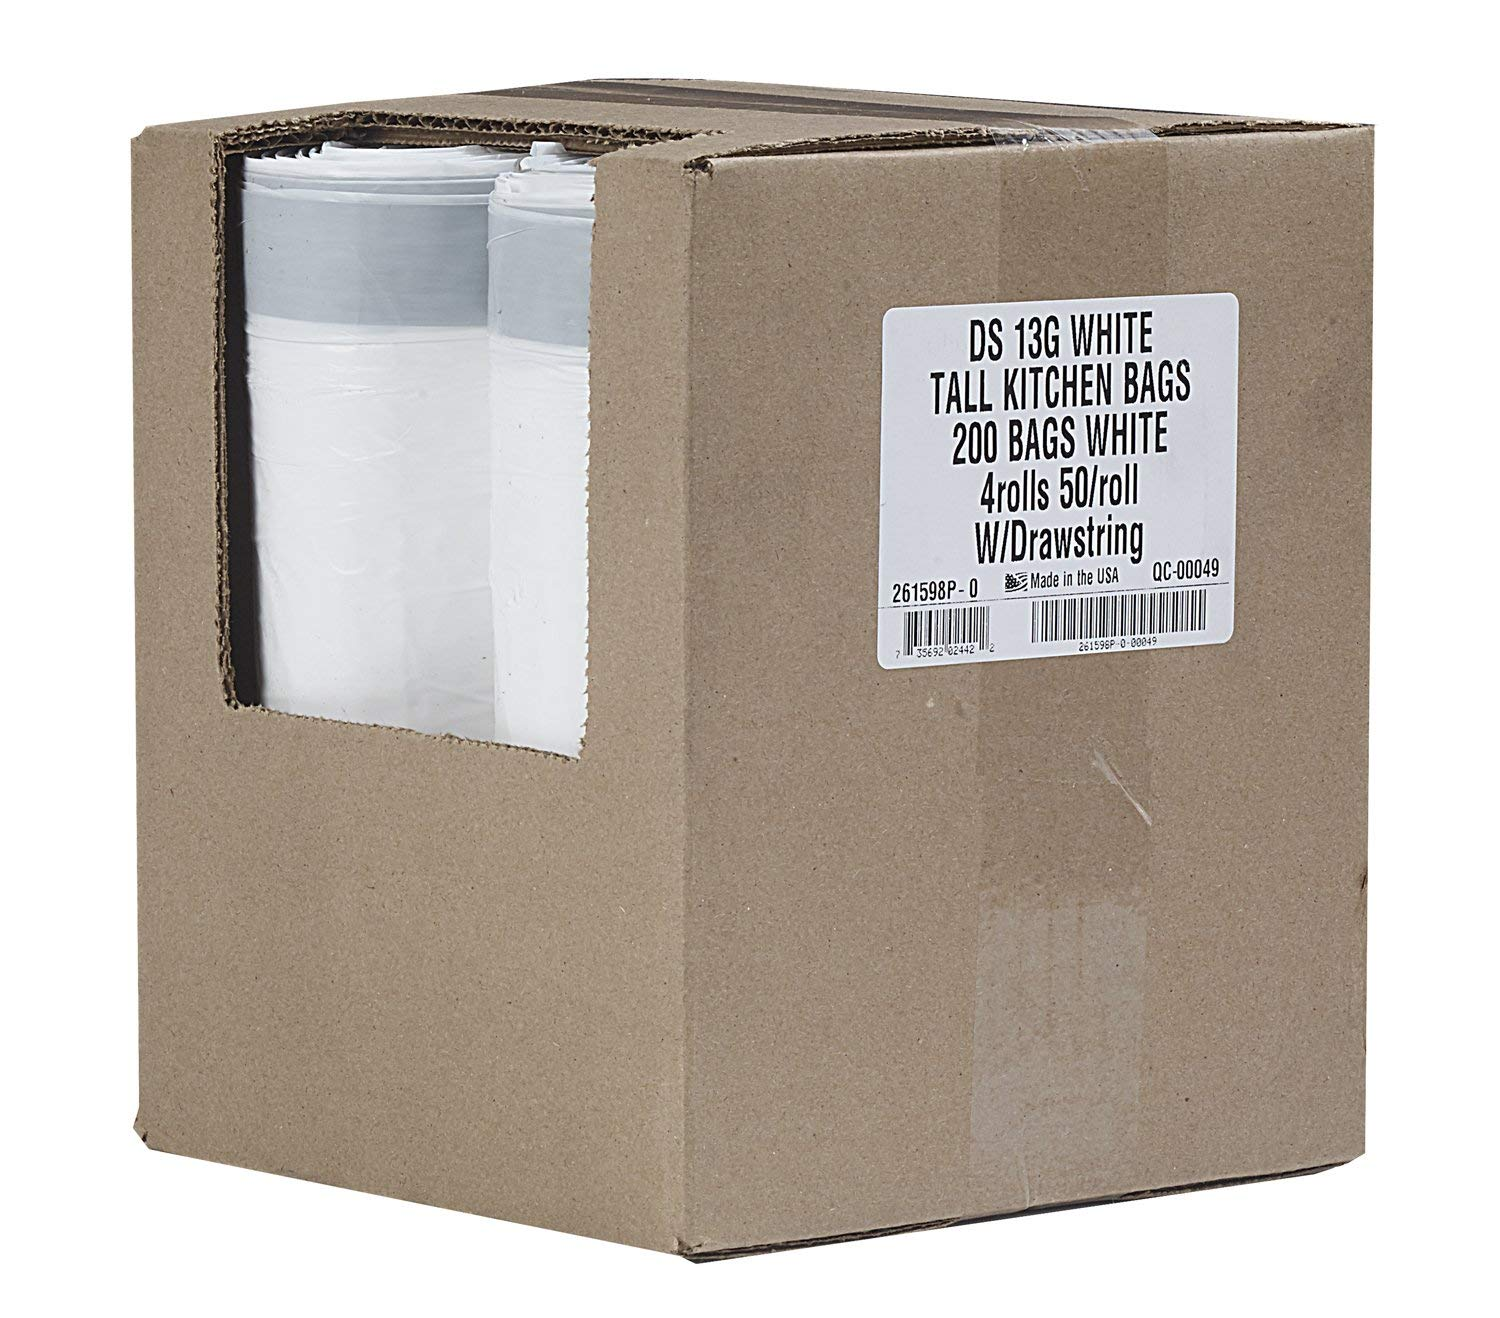 """Aluf Plastics Tall Kitchen 13 Gallon Drawstring Trash Bags - (Bulk 200 Count) - 24""""x27"""" - Wholesale, commerical Garbage Bags"""